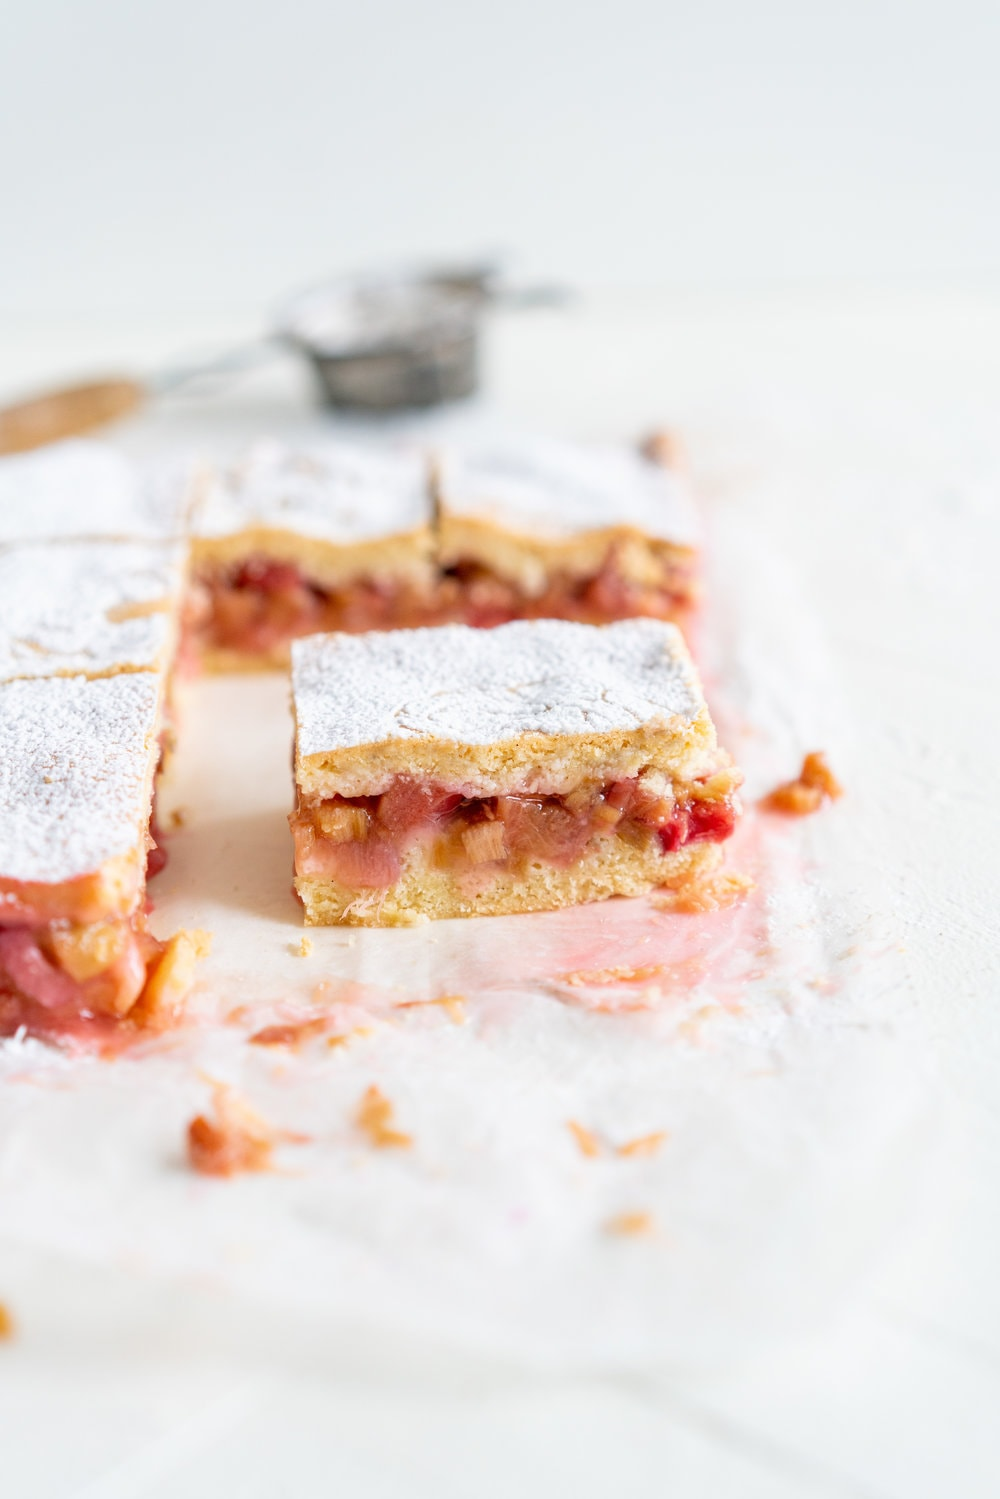 Rhubarb Shortcake Bars - Two layers of sweet, short pastry enclose a jammy, rhubarb centre. These rhubarb shortcake bars differ from traditional American shortcake in that they are all baked together, giving you a range in texture - crisp pastry, soft where it hits the tart rhubarb centre, and a dusting of powdered sugar to finish. This recipe is amazingly versatile and works great with any stone fruit or berries. #rhubarb #rhubarbshortcake #shortcake #newzealandshortcake